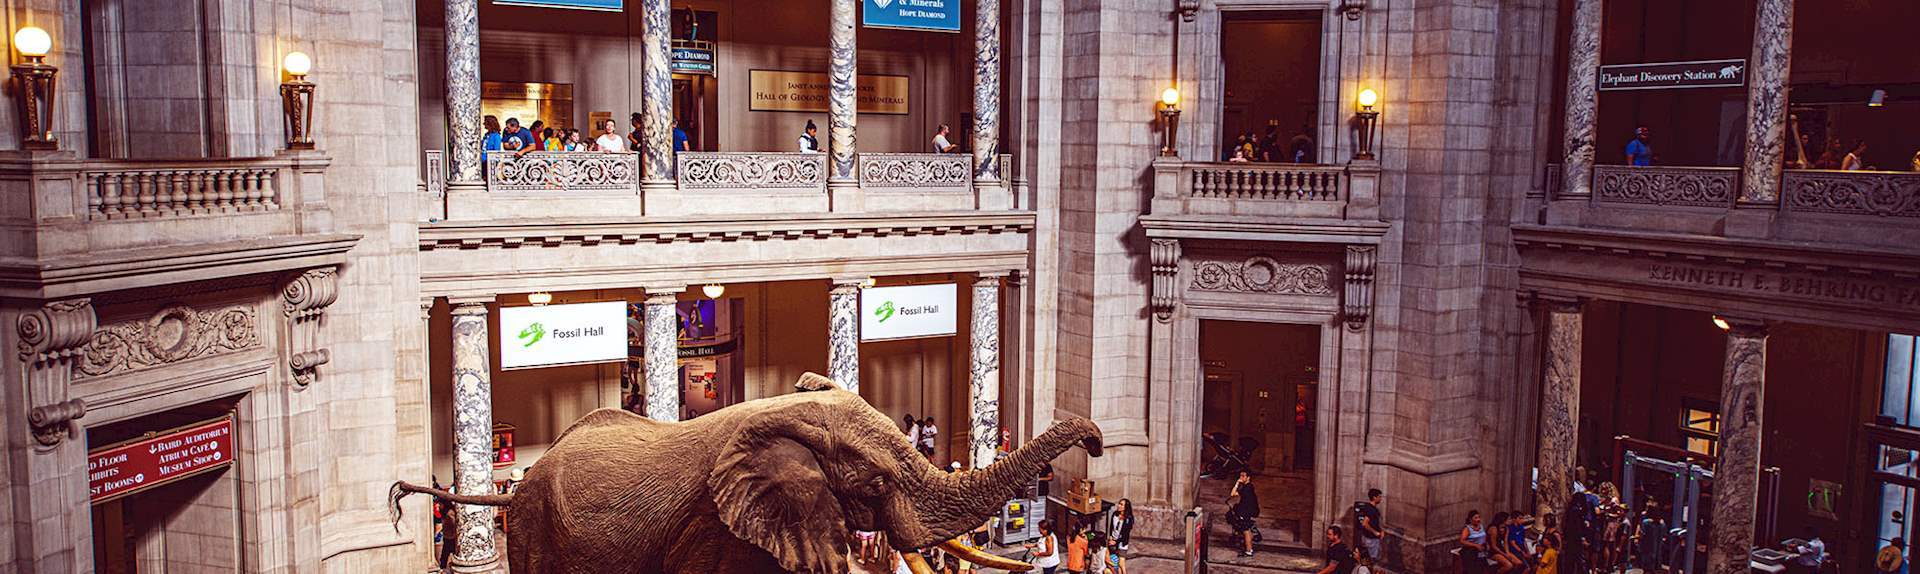 Smithsonian Museums at Washington, District of Columbia